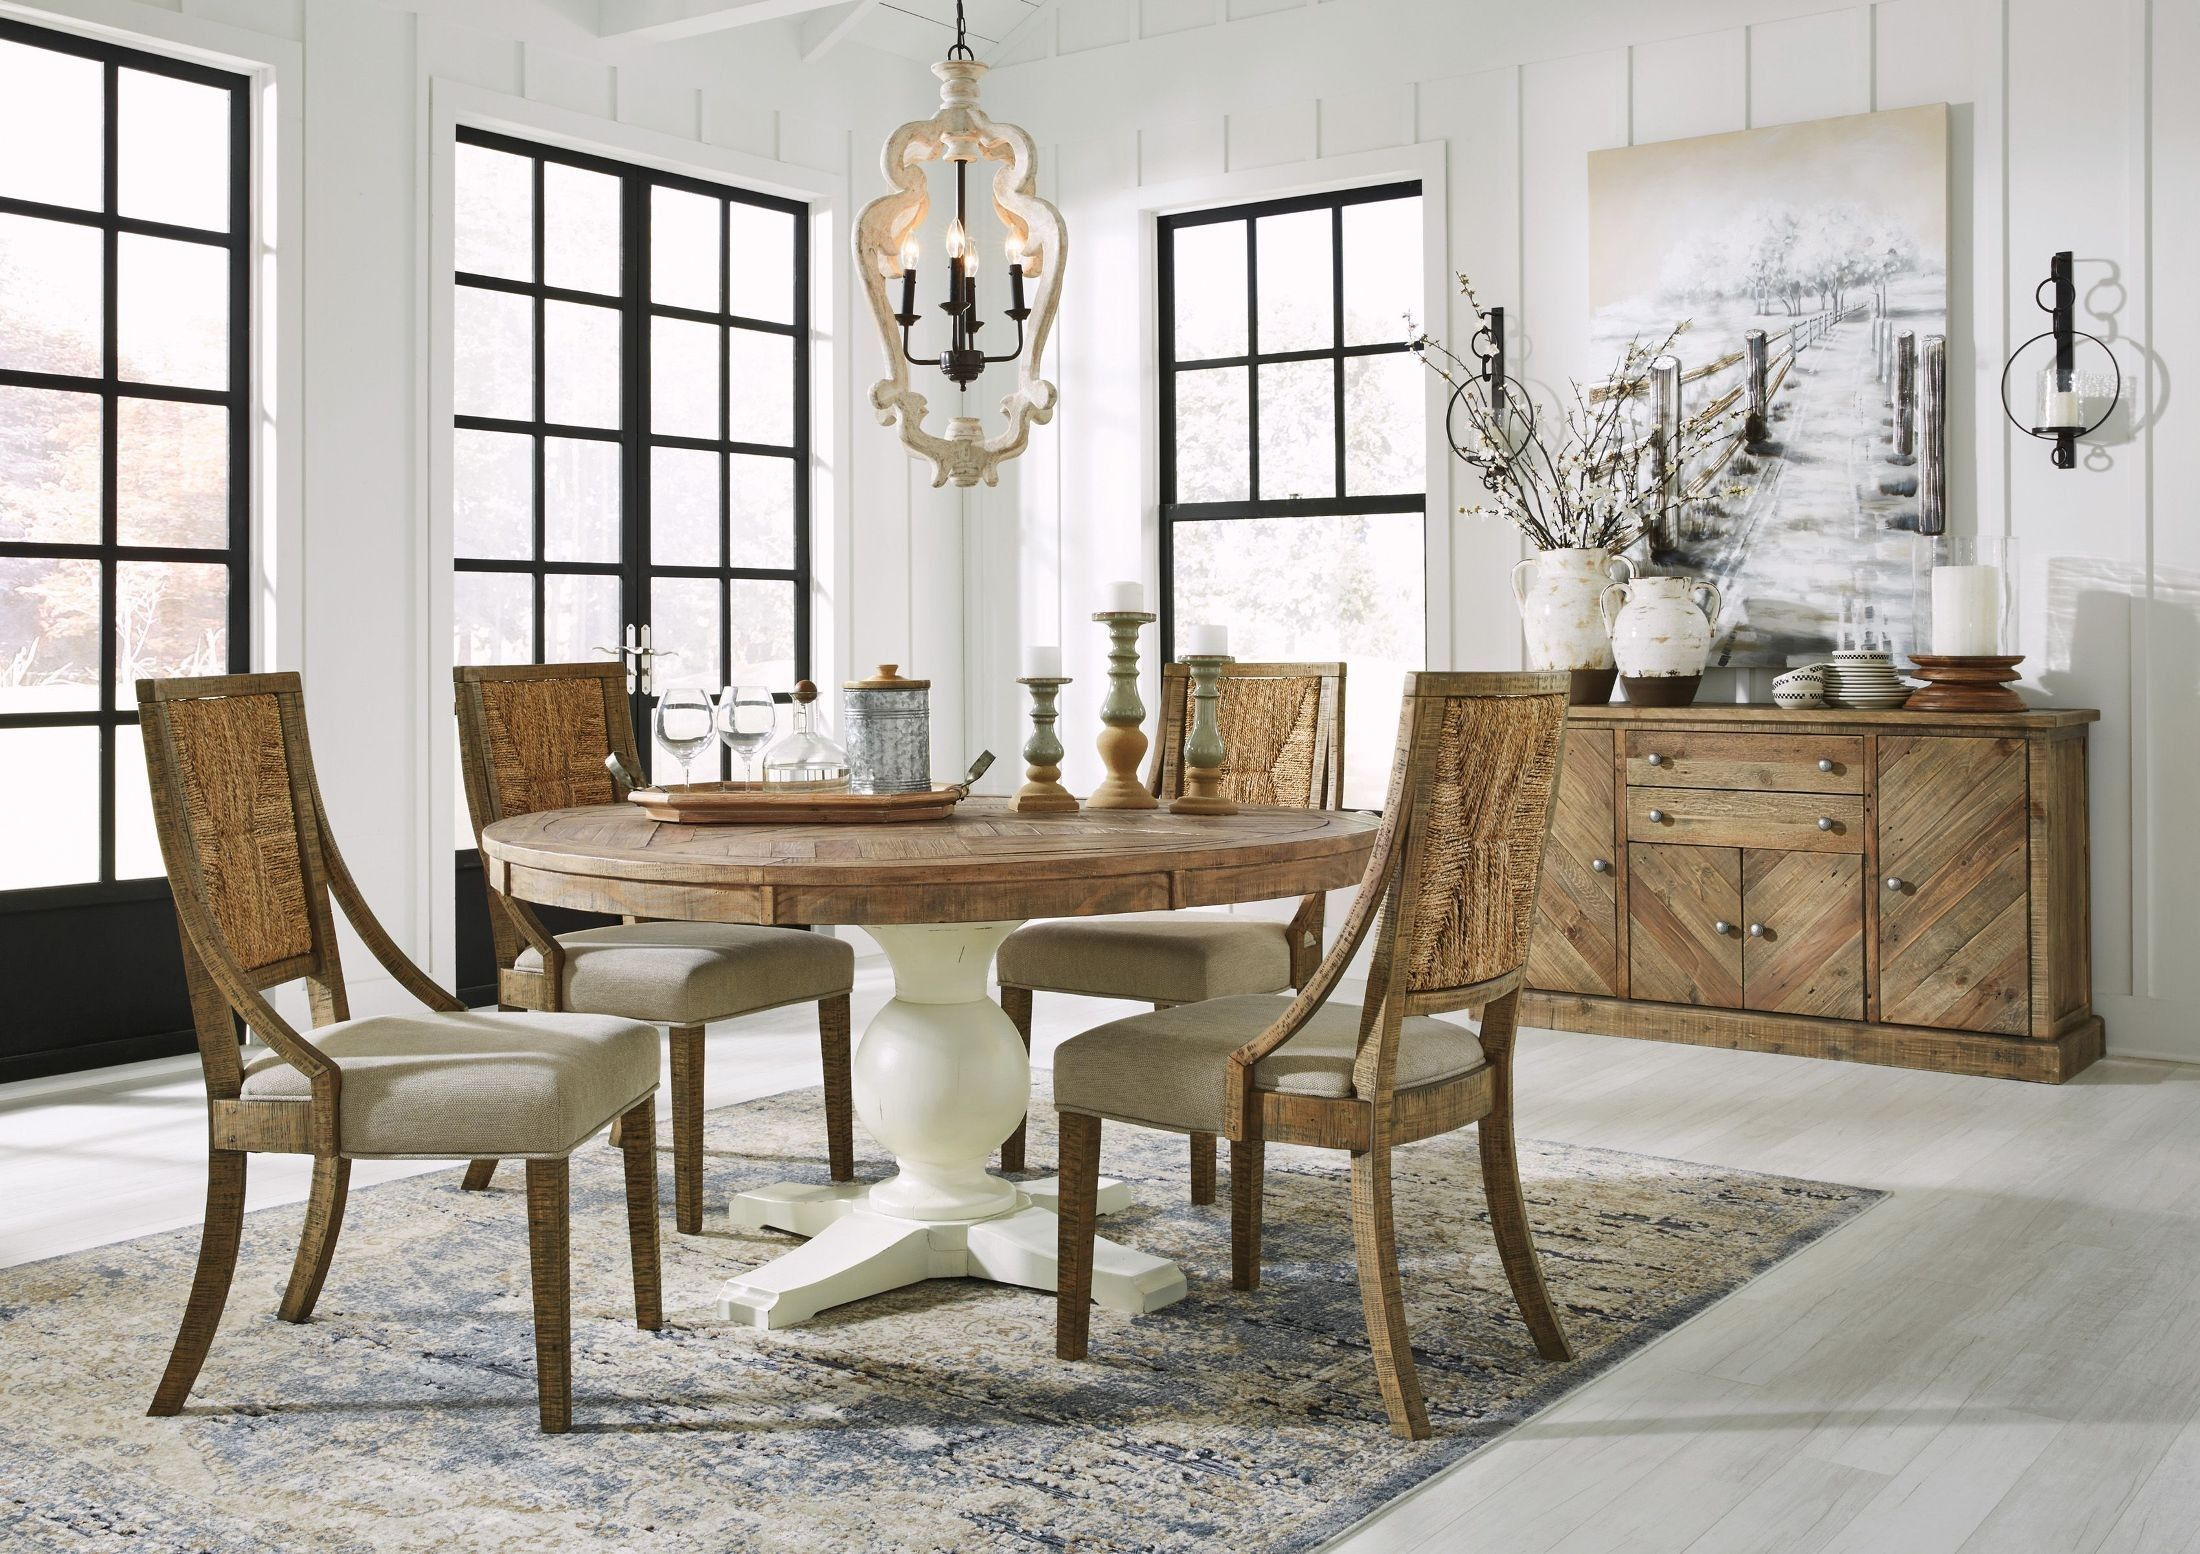 Grindleburg Light Brown Round Dining Table In 2020 Dining Room